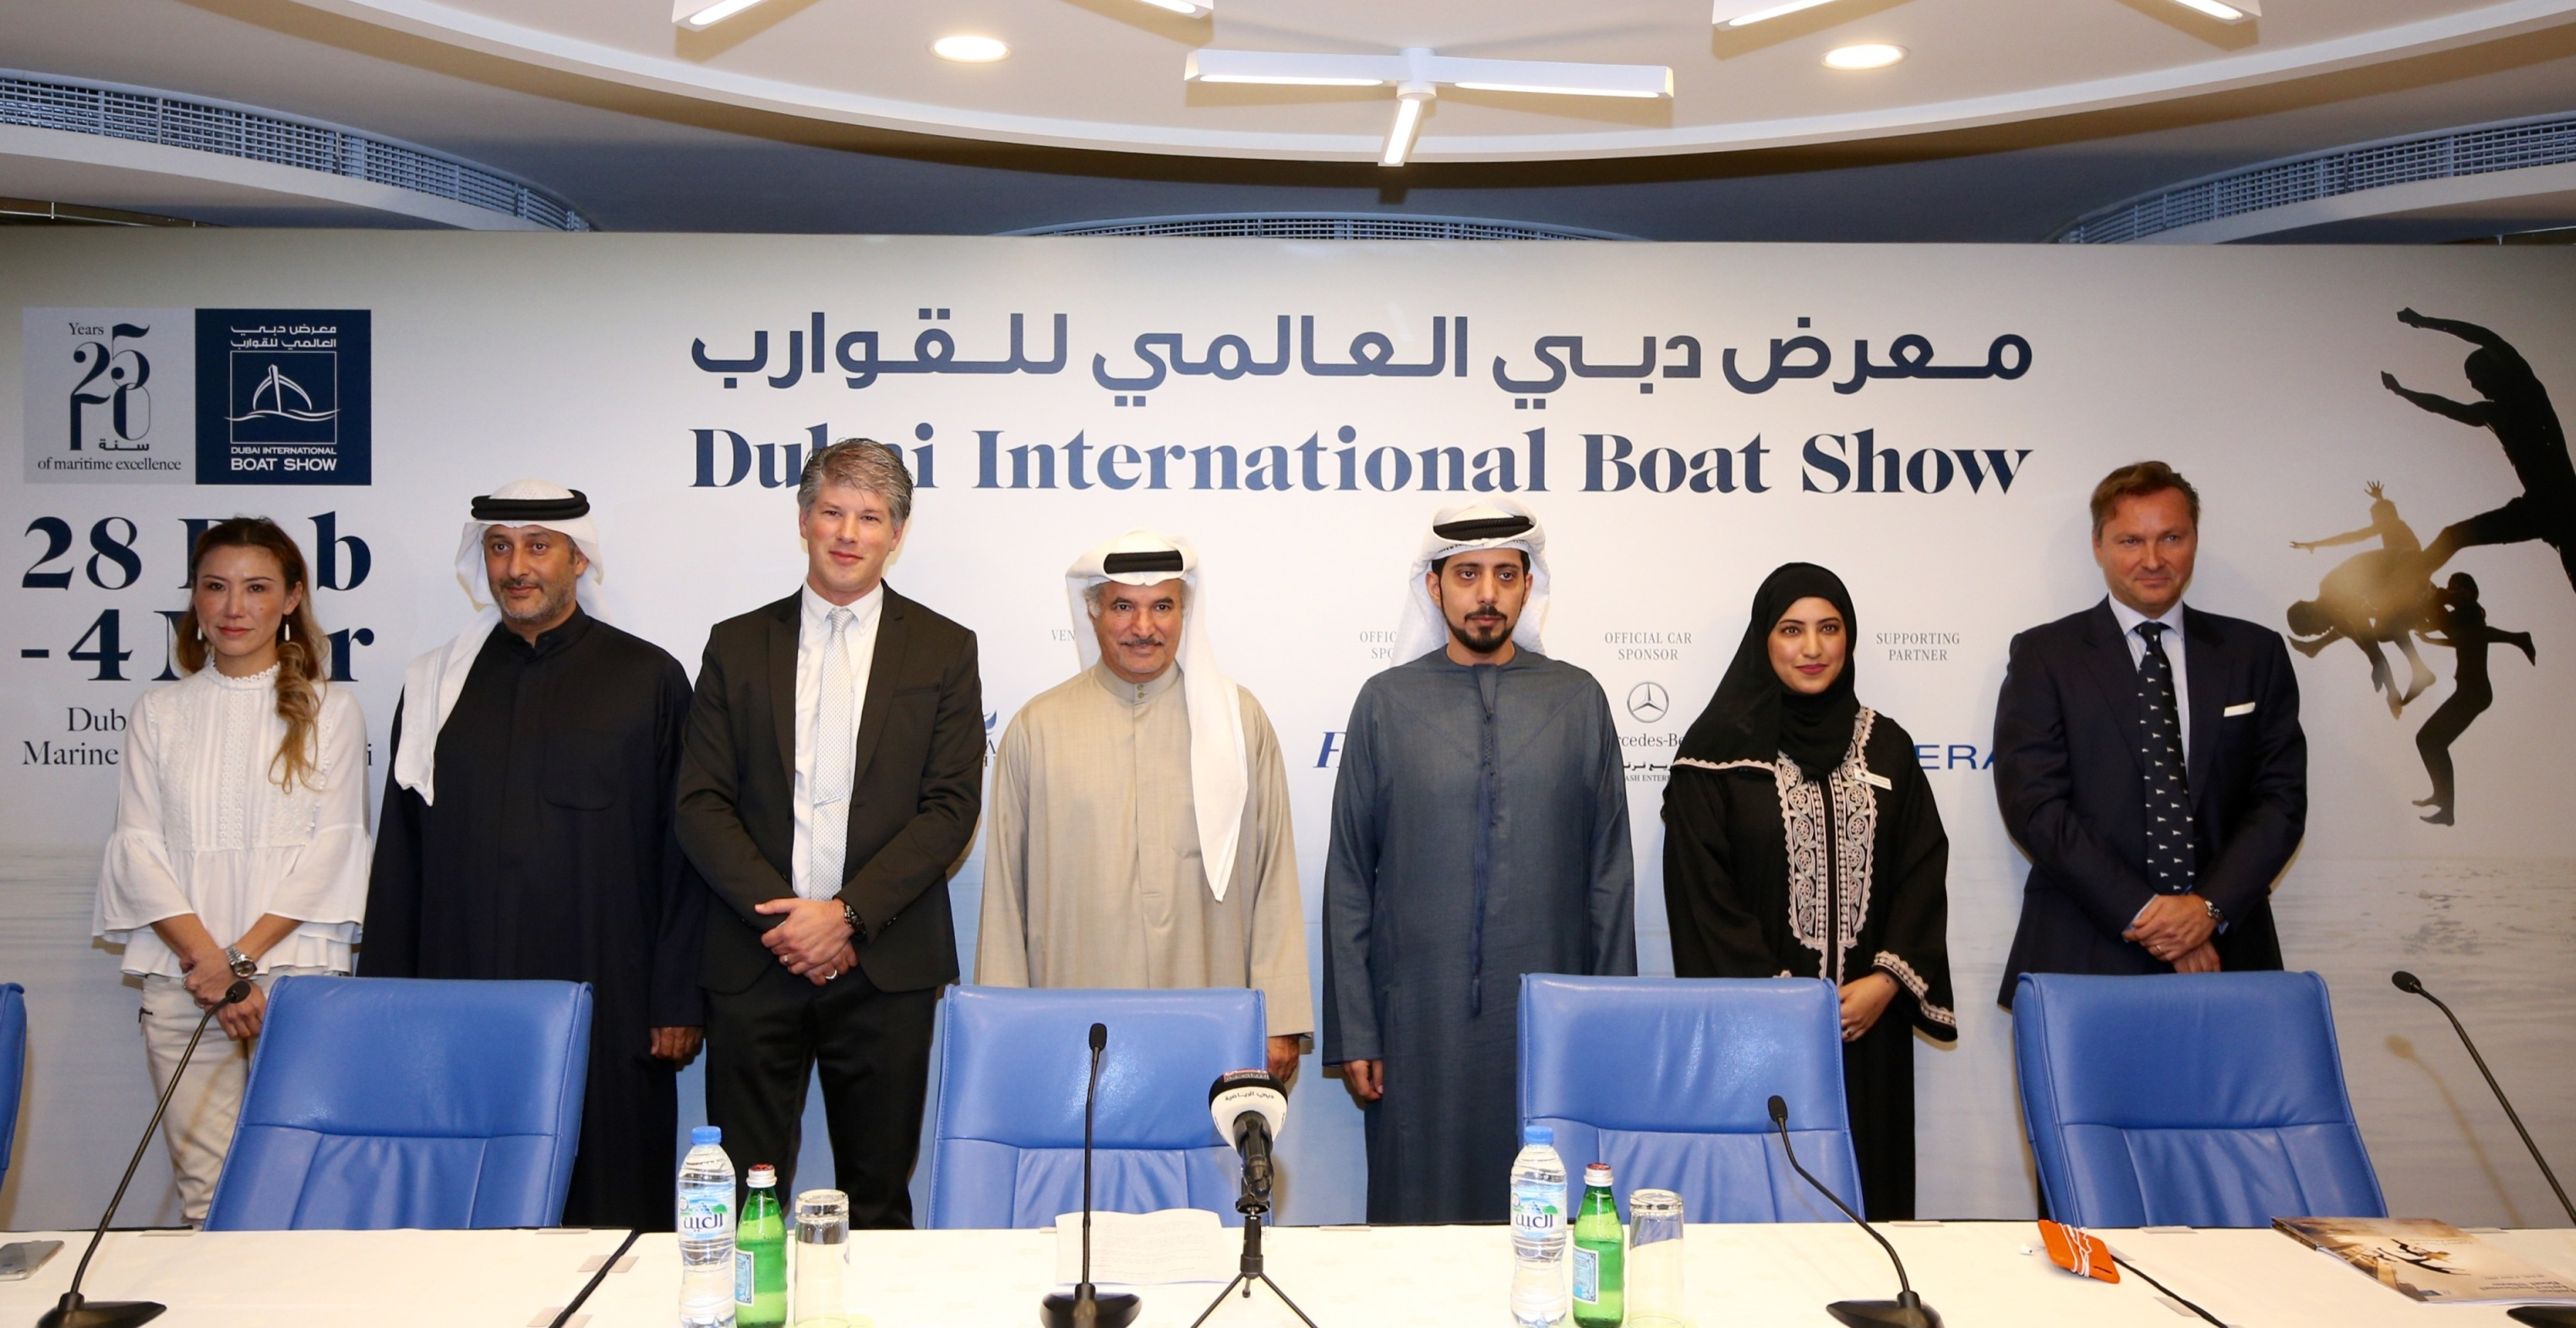 Amid Pioneering Marine Projects and Industry Innovation, Dubai International Boat Show Reaches 25-Year Milestone